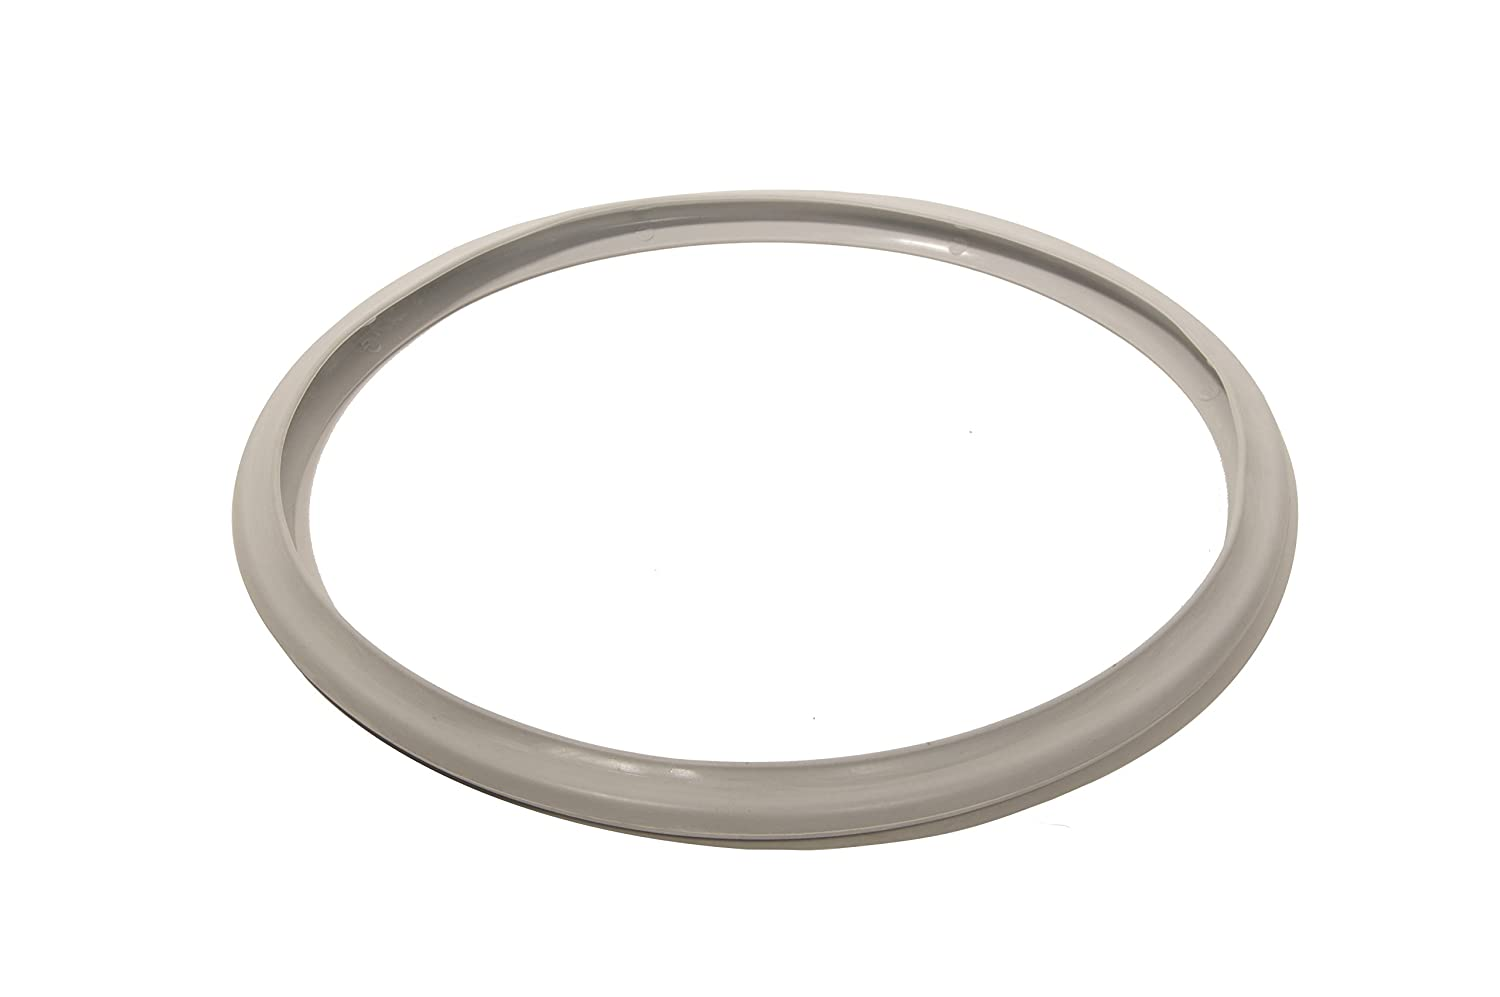 Fagor 10 Inch Replacement Silicone Gasket - 998010441